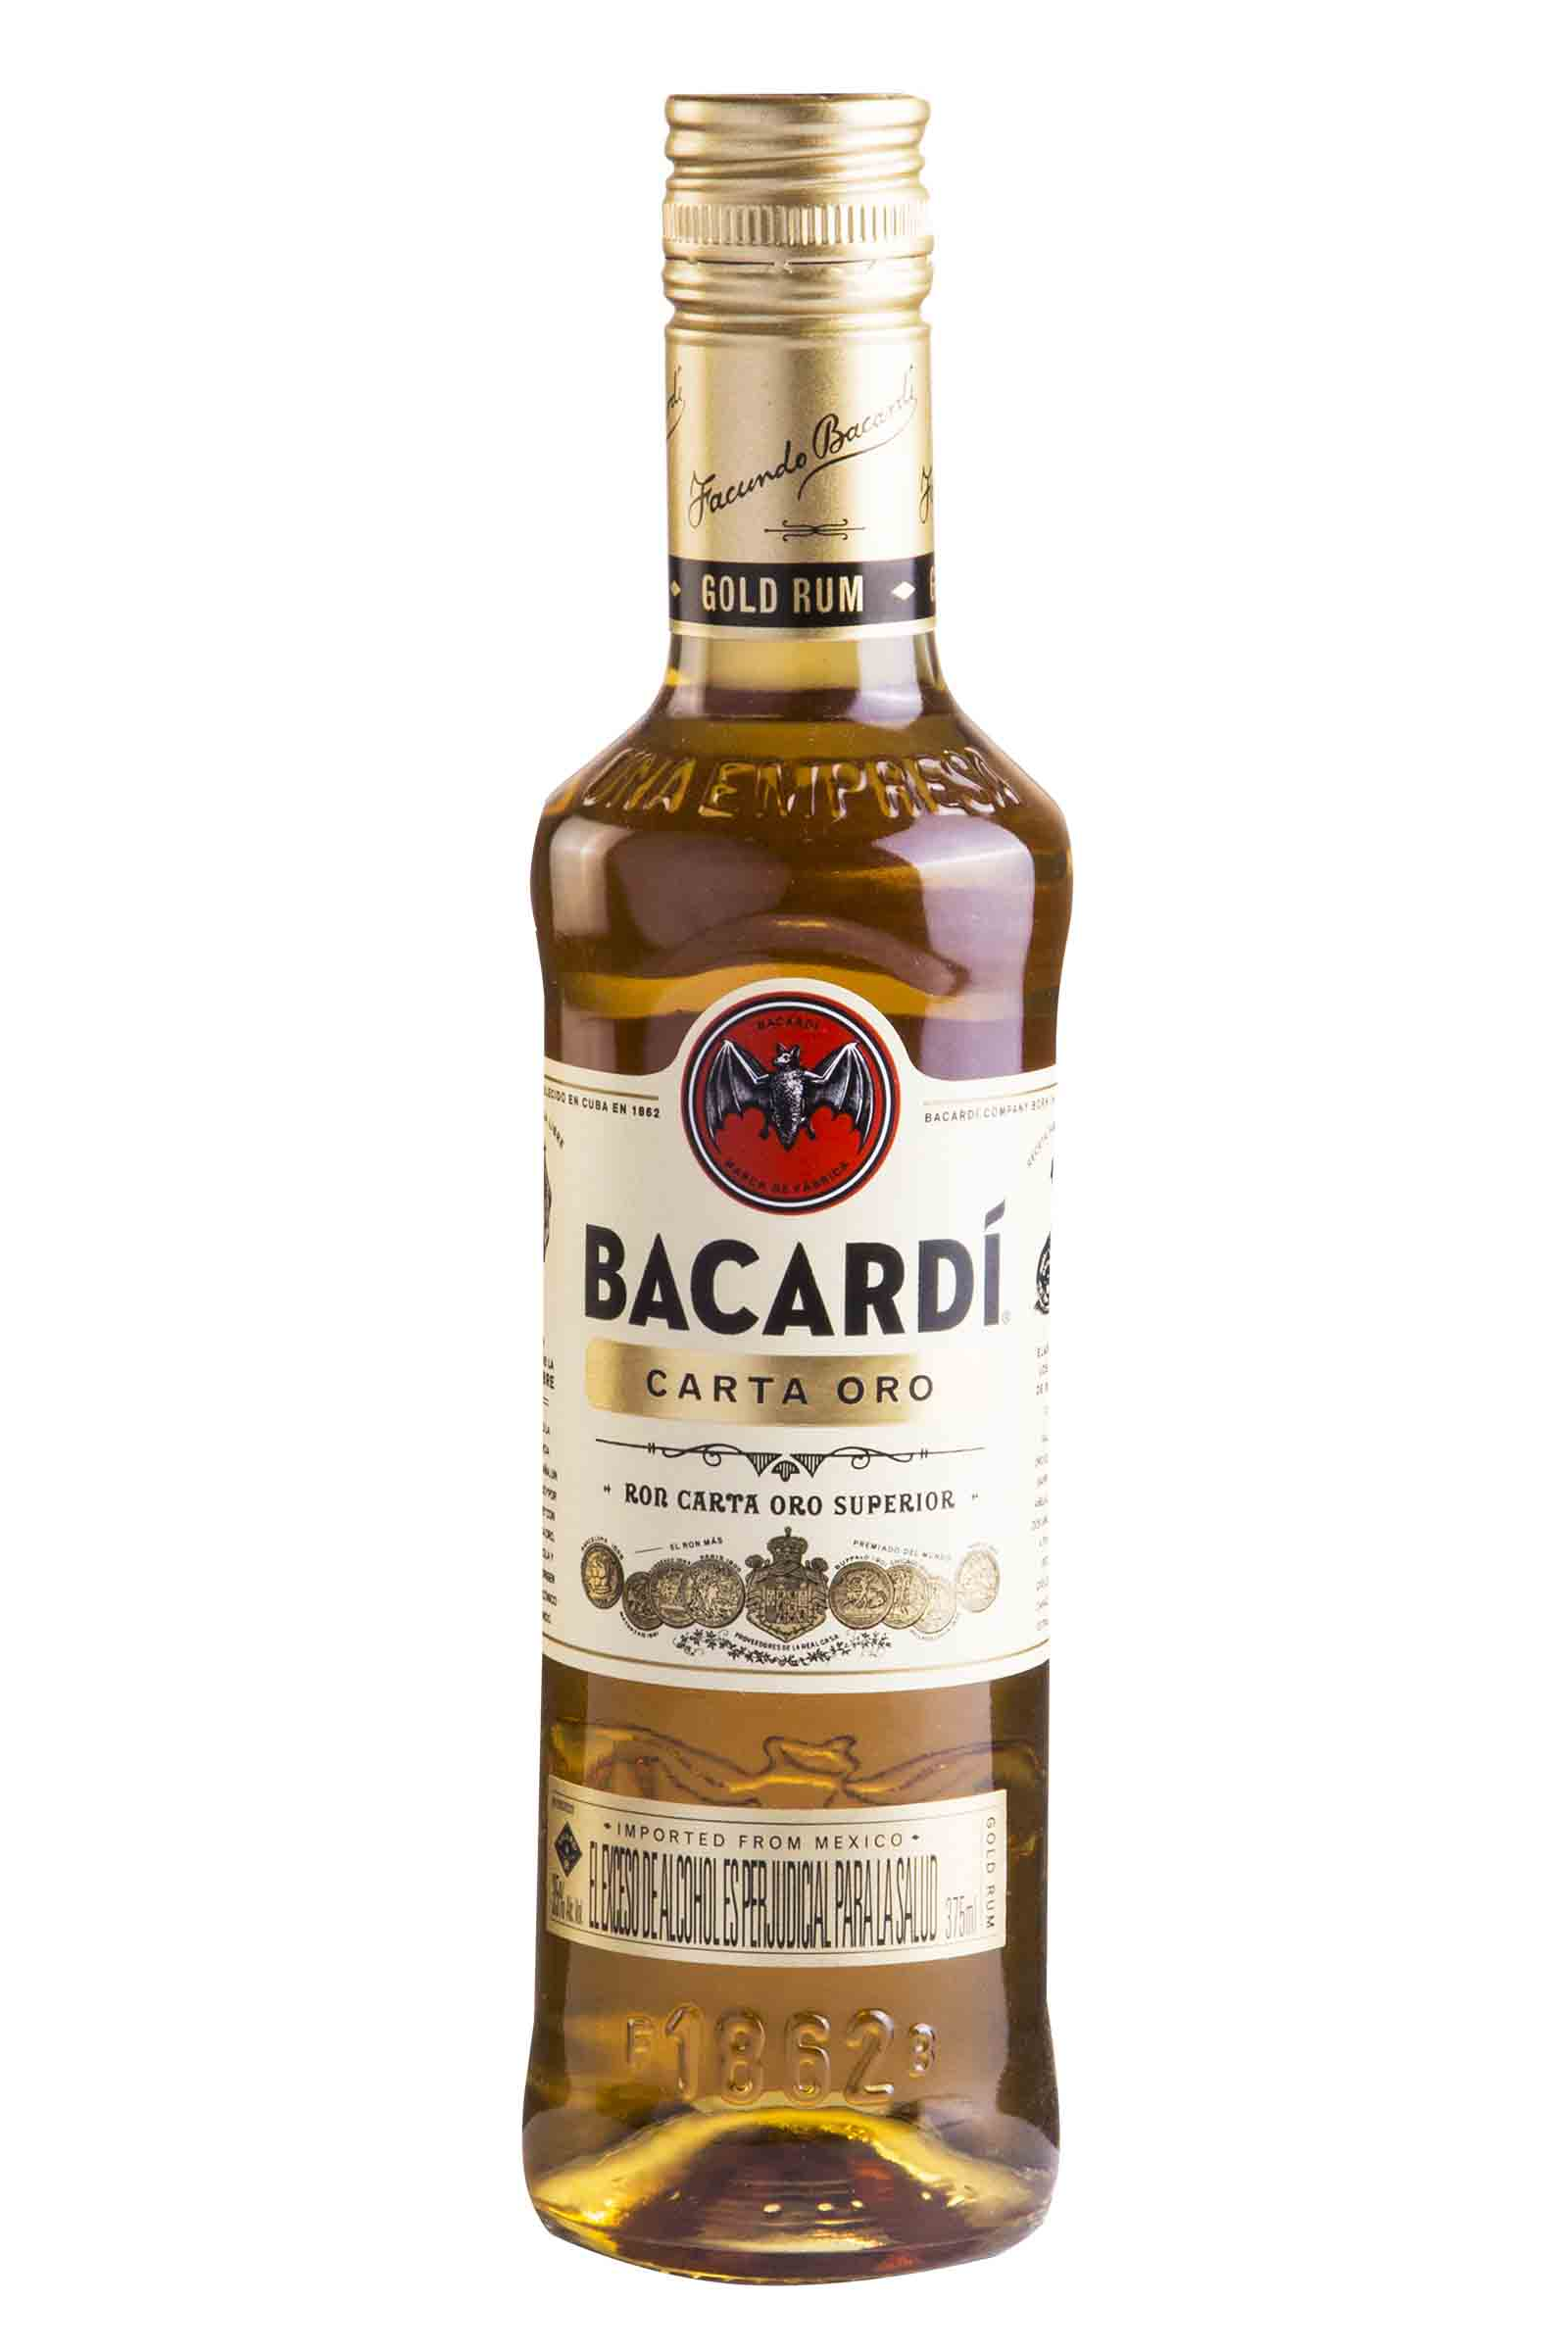 Ron Bacardi Carta Oro 375ml